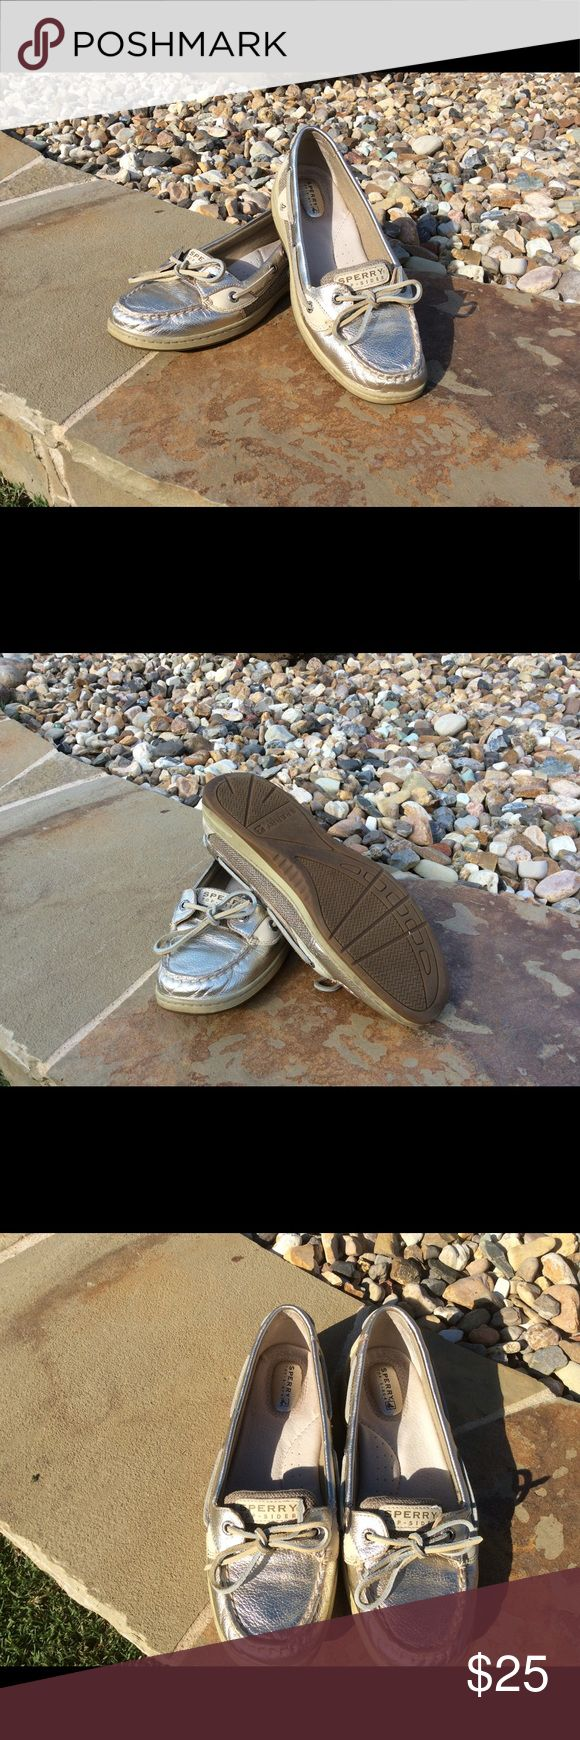 Sperry Angelfish gold metallic boat shoes Gently worn gold metallic boat shoes Sperry Top-Sider Shoes